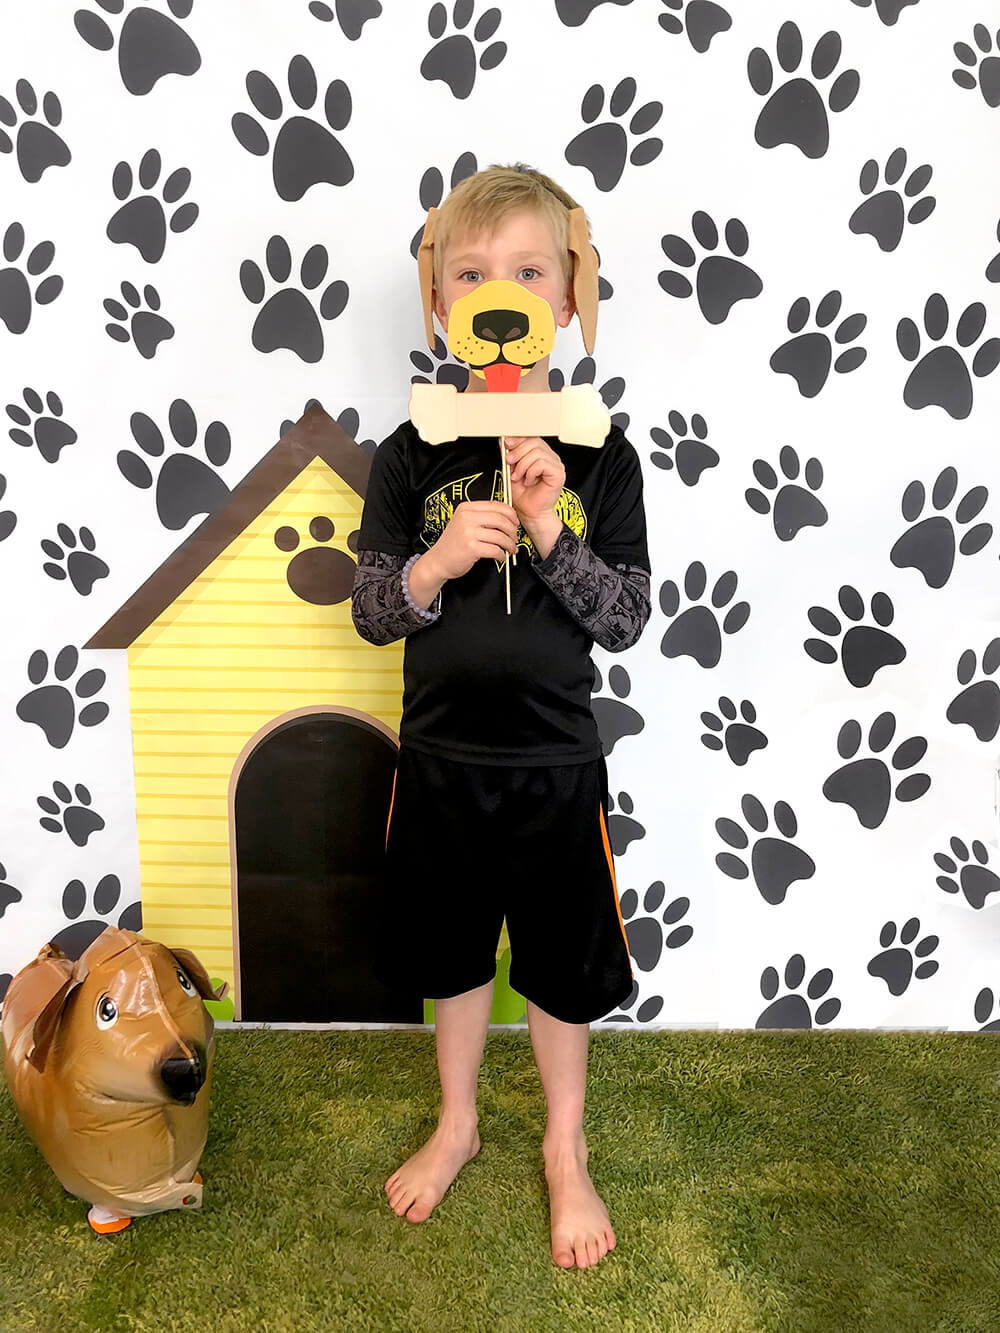 Puppy backdrop photo booth - Dog Themed Puppy Birthday Party Ideas